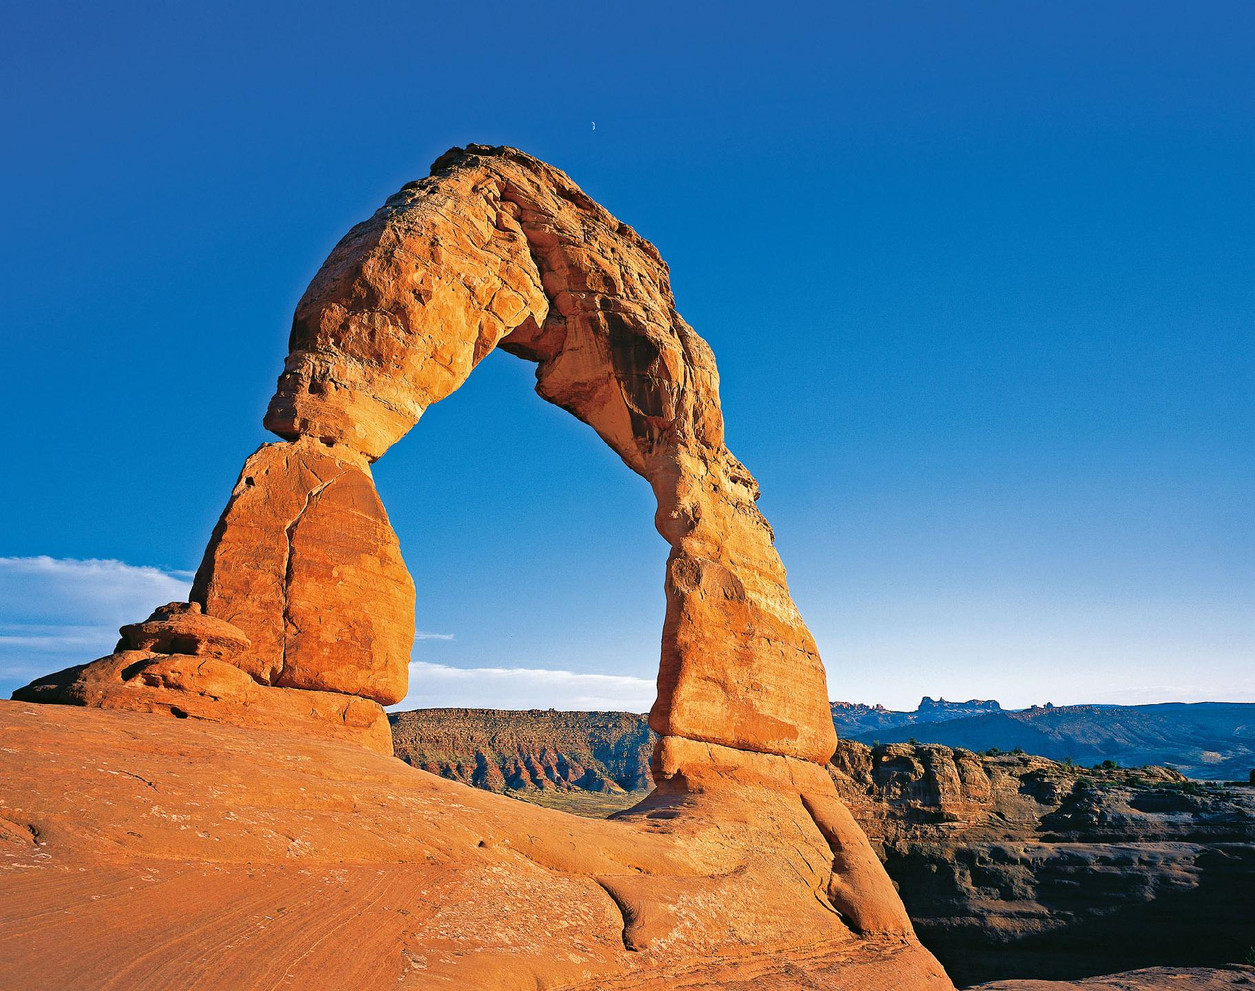 010_delicate_arches_arhes_n_20101105_121